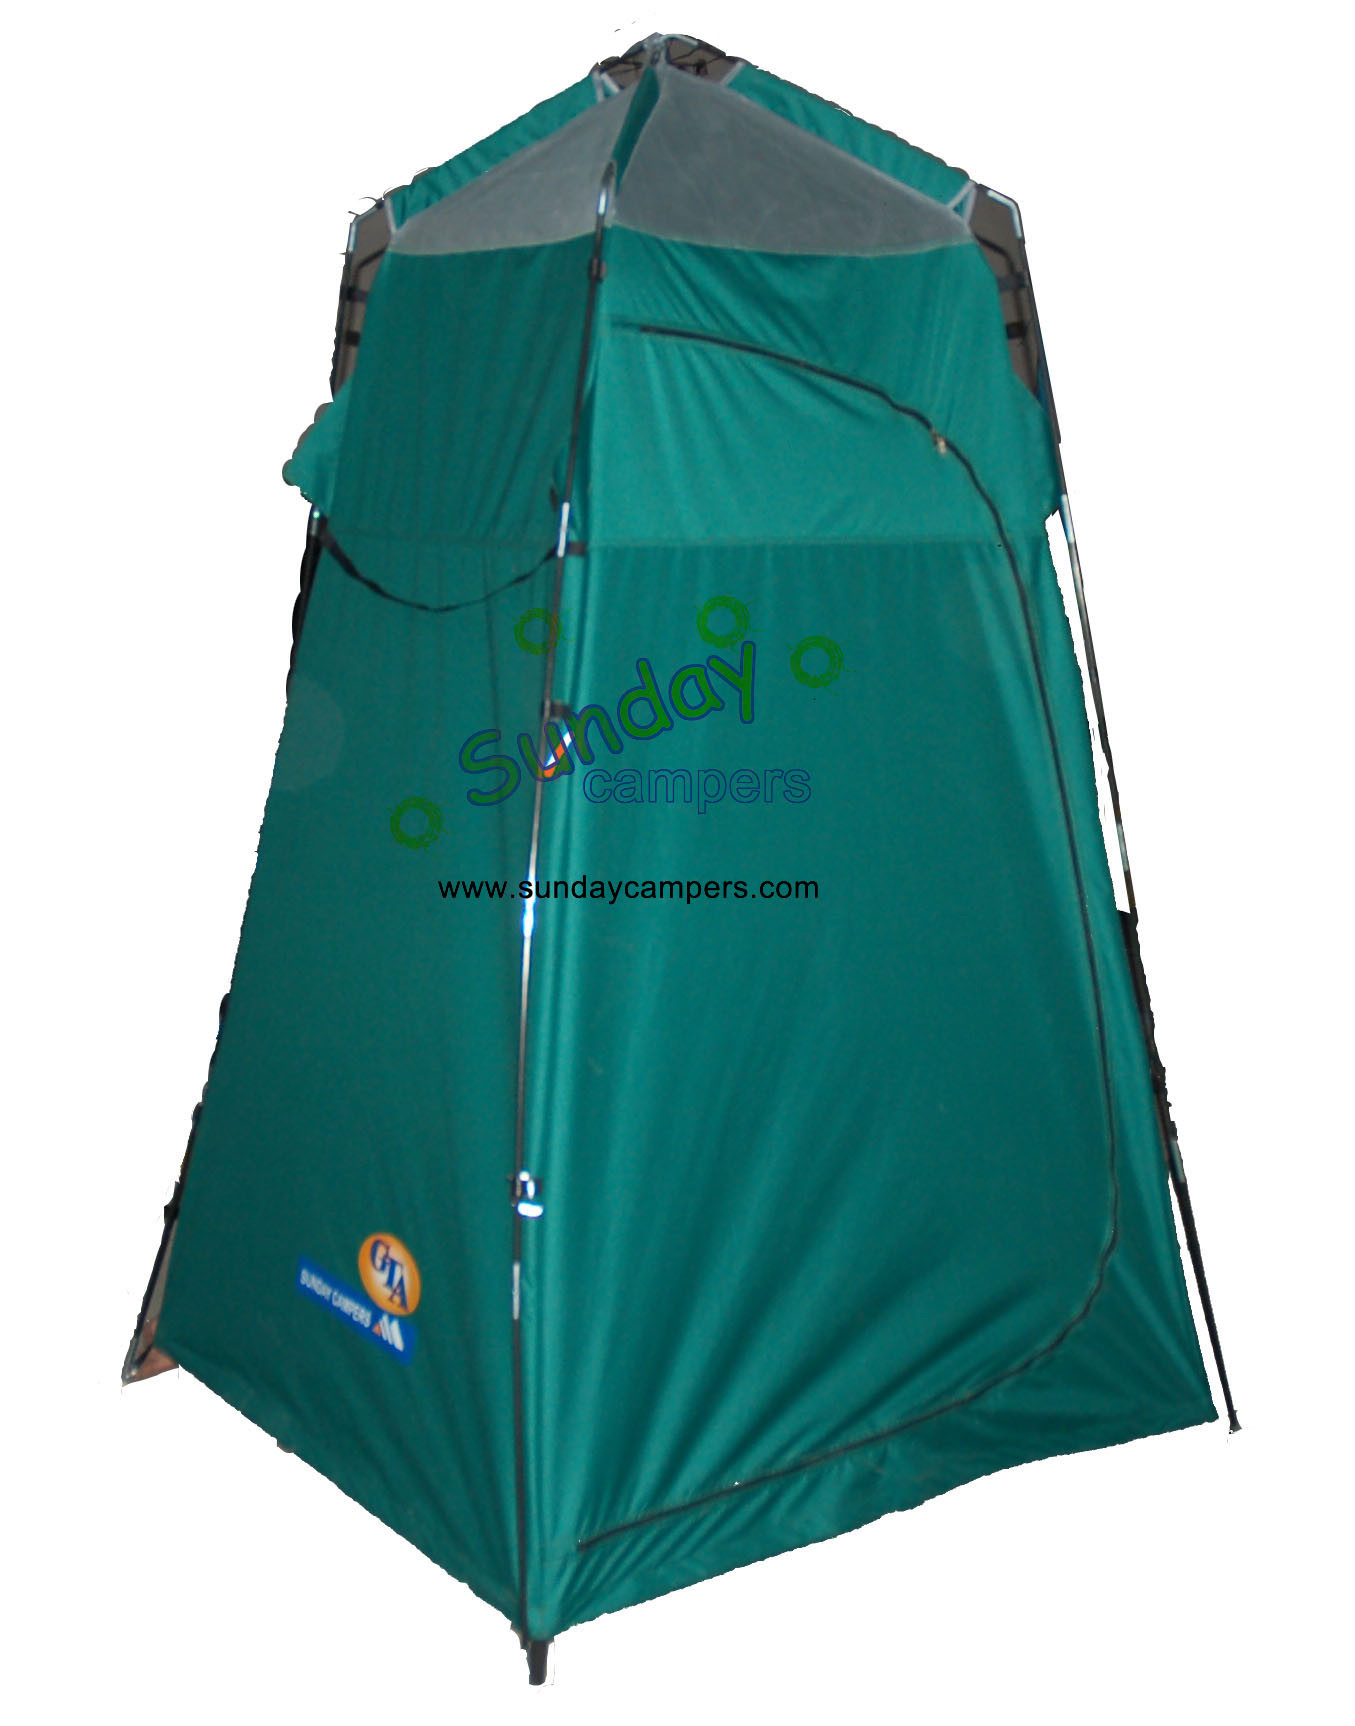 Portable Shower Tent : China portable shower tent for camper photos pictures